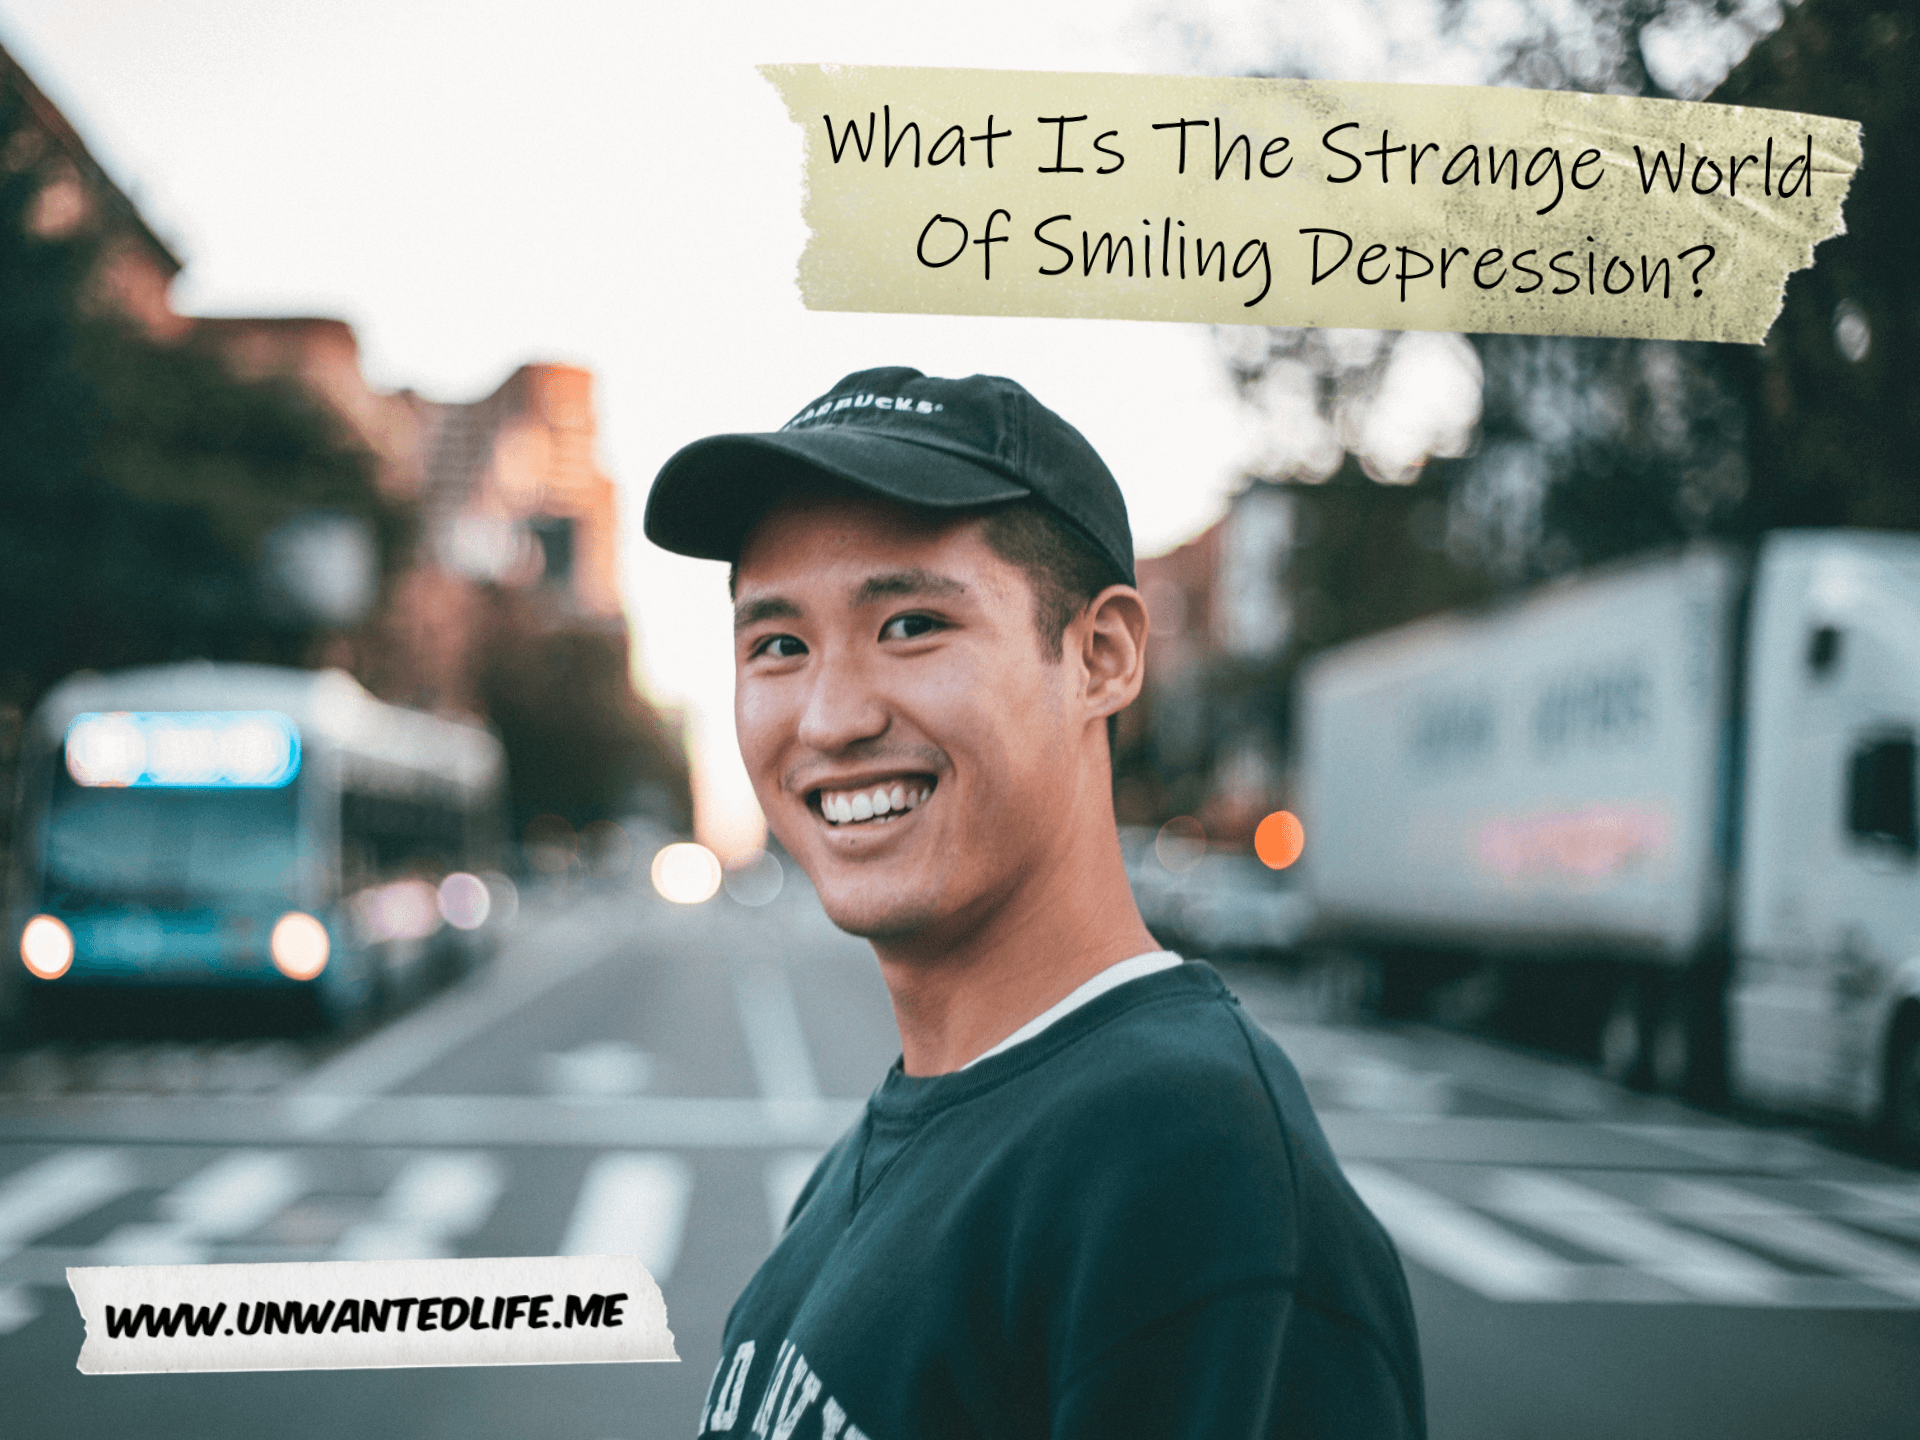 An Asian man crossing the road with a fake smile on to represent the topic of the article - What Is The Strange World Of Smiling Depression?